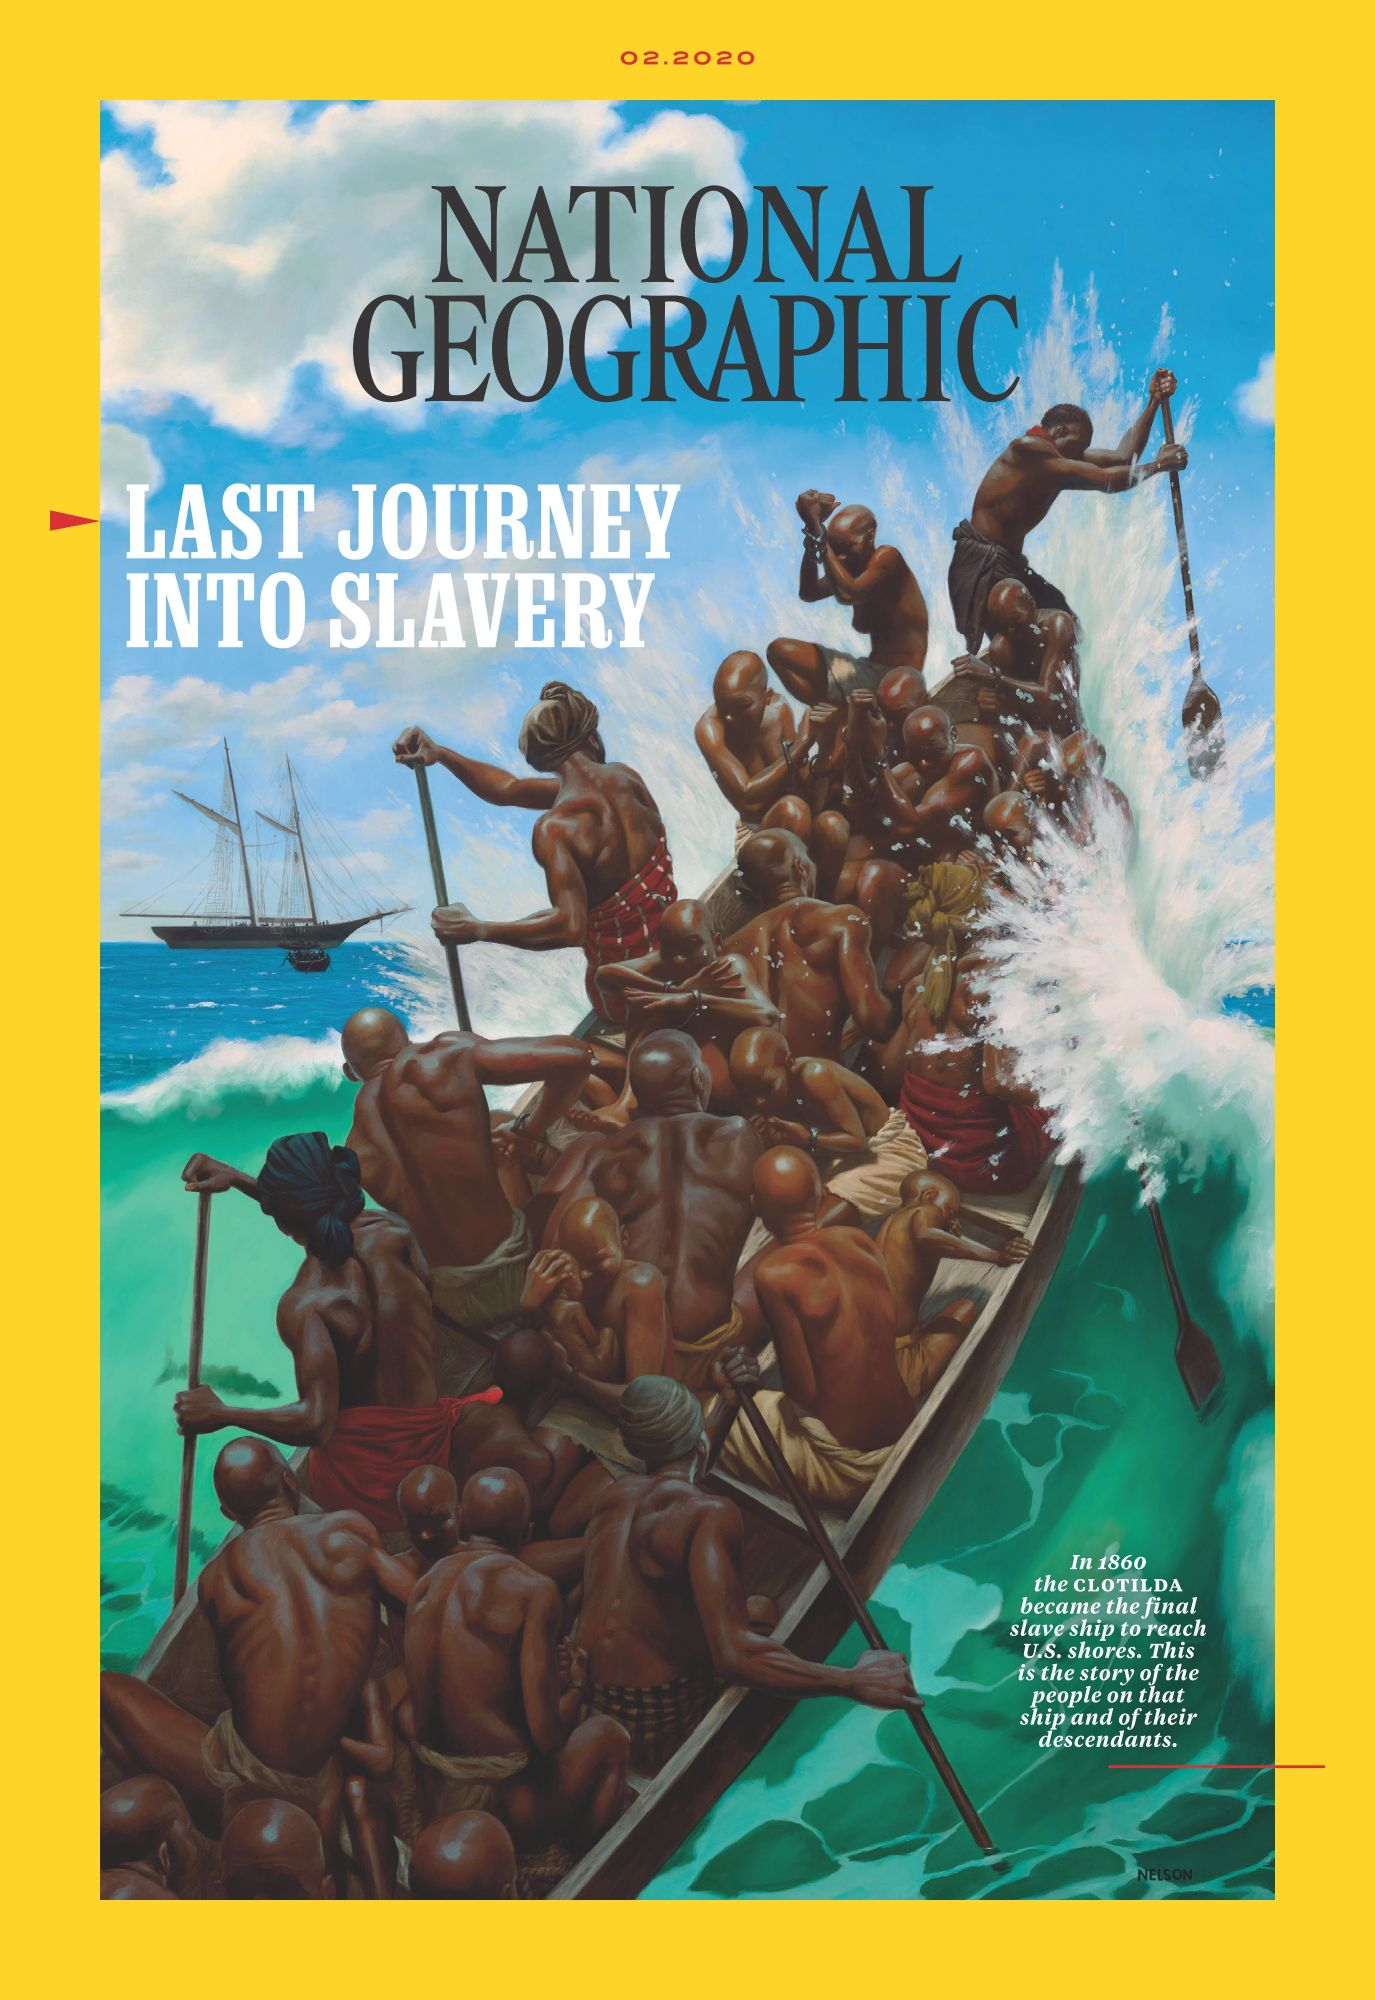 Photo of a boat full of men capsizing in the sea with a thick yellow border and words National Geographic at the top.